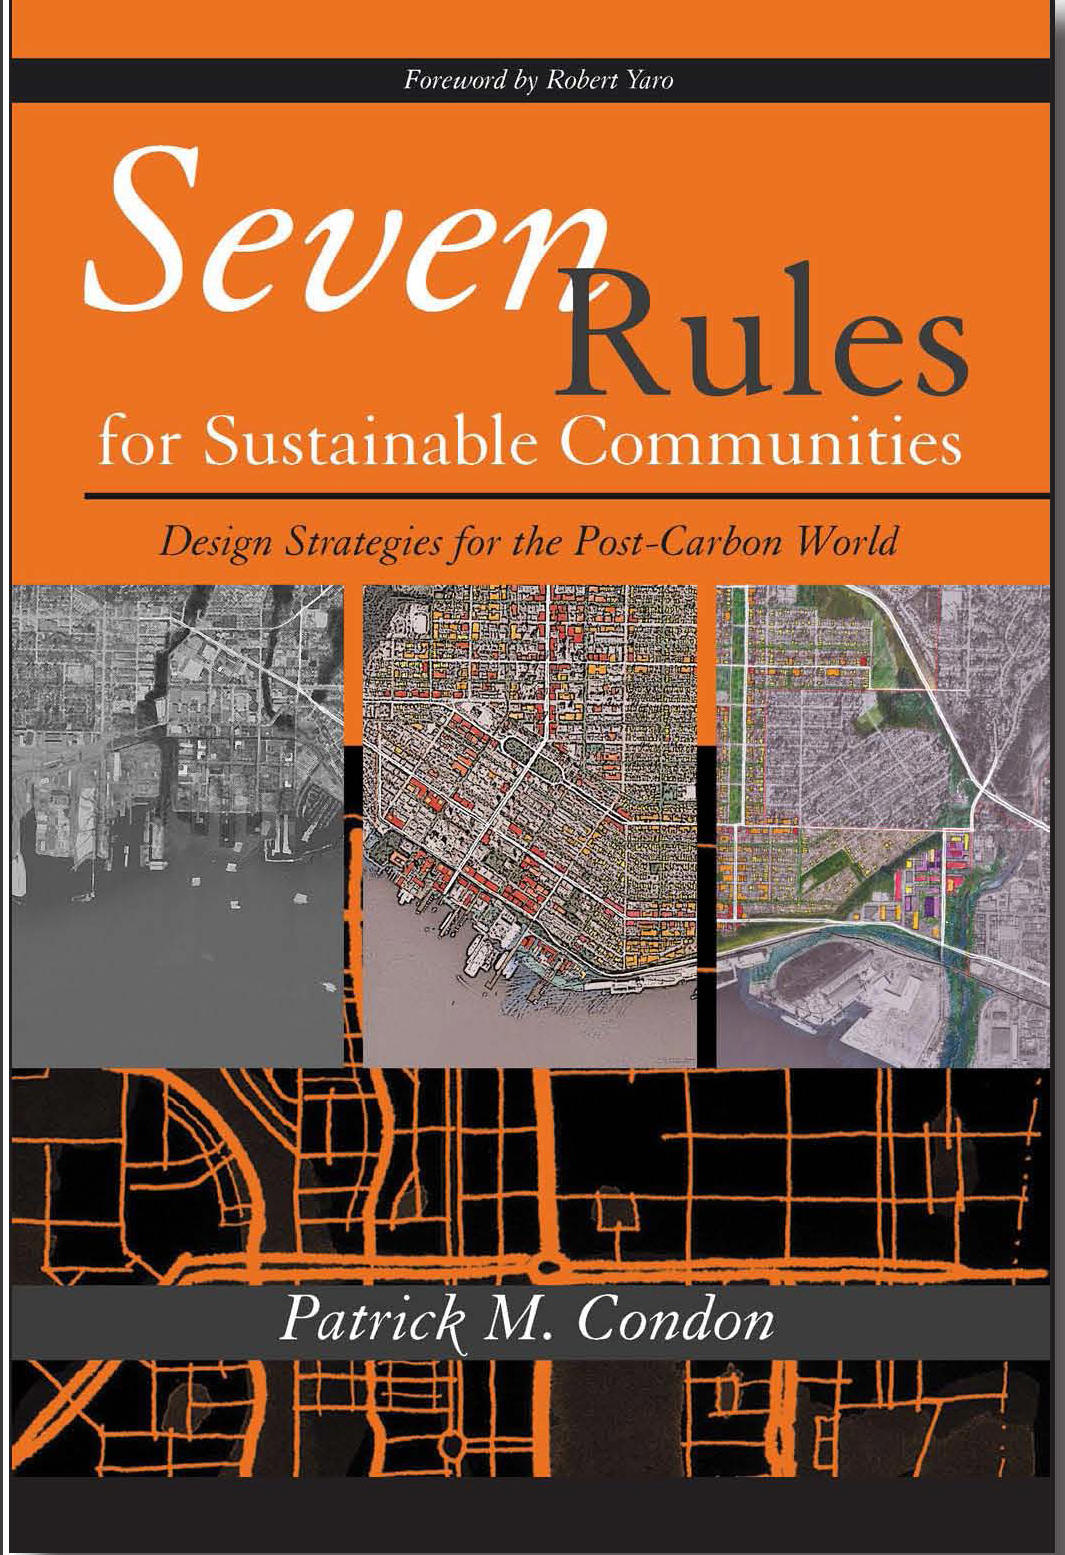 Patrick Condon_Seven Rules for Sustainable Communities_2010_cover